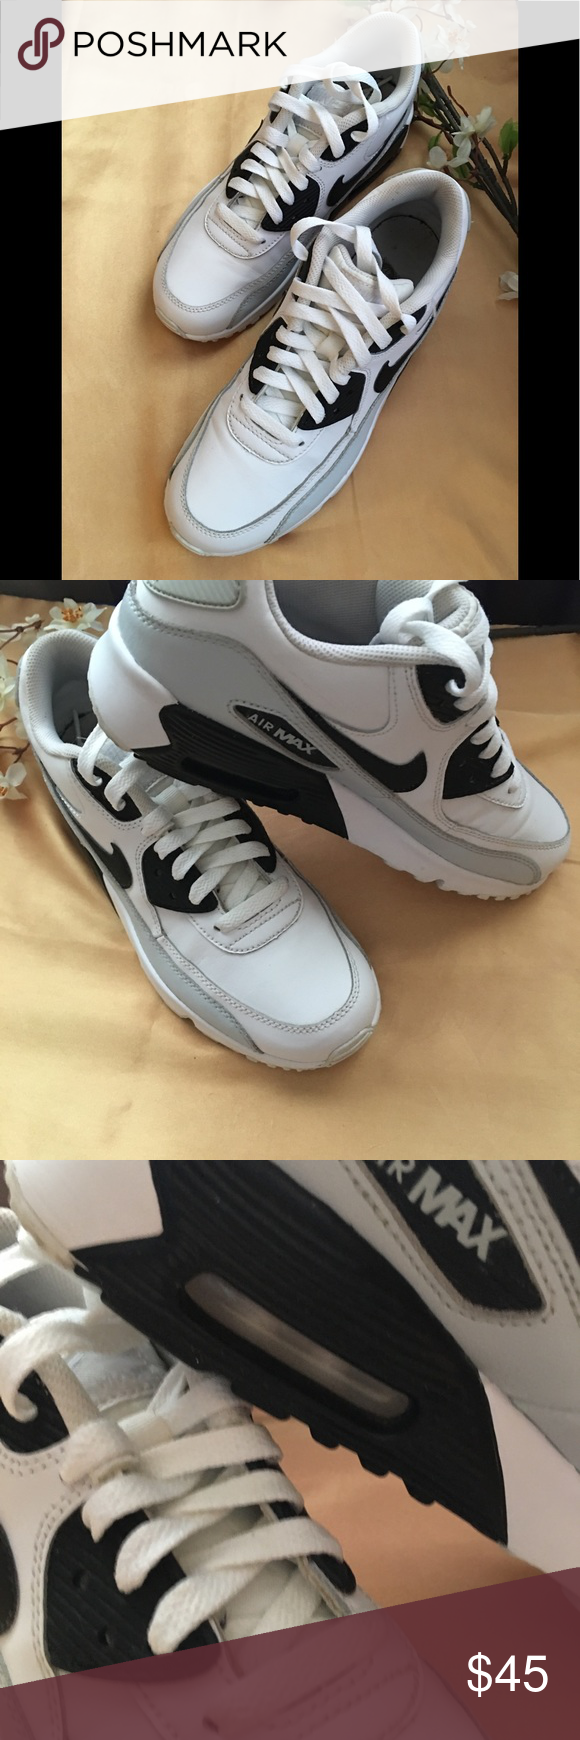 finest selection 947e9 b1527 Nike Air Max 90 Sneakers Gently Used, White   Black Leather Sneakers, Size  6Y   Men 6...Great Condition‼ Nike Shoes Sneakers